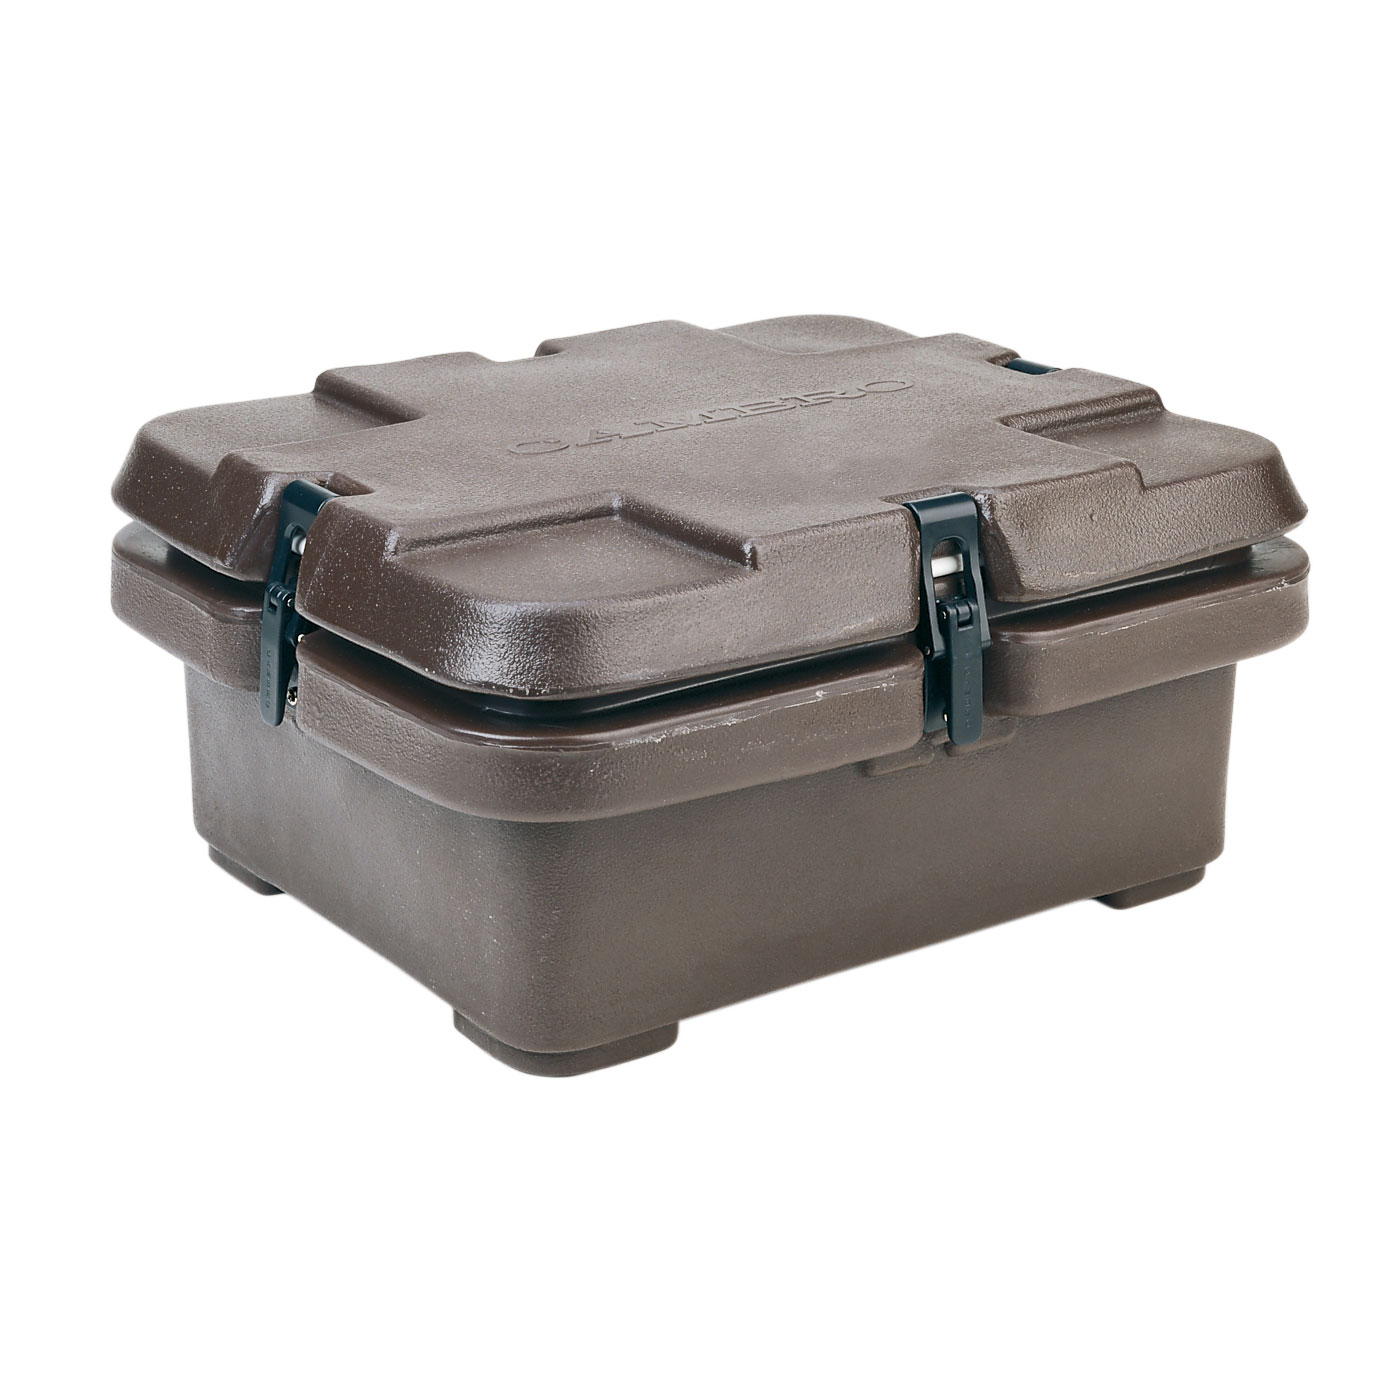 Cambro 240MPC131 food pan carriers